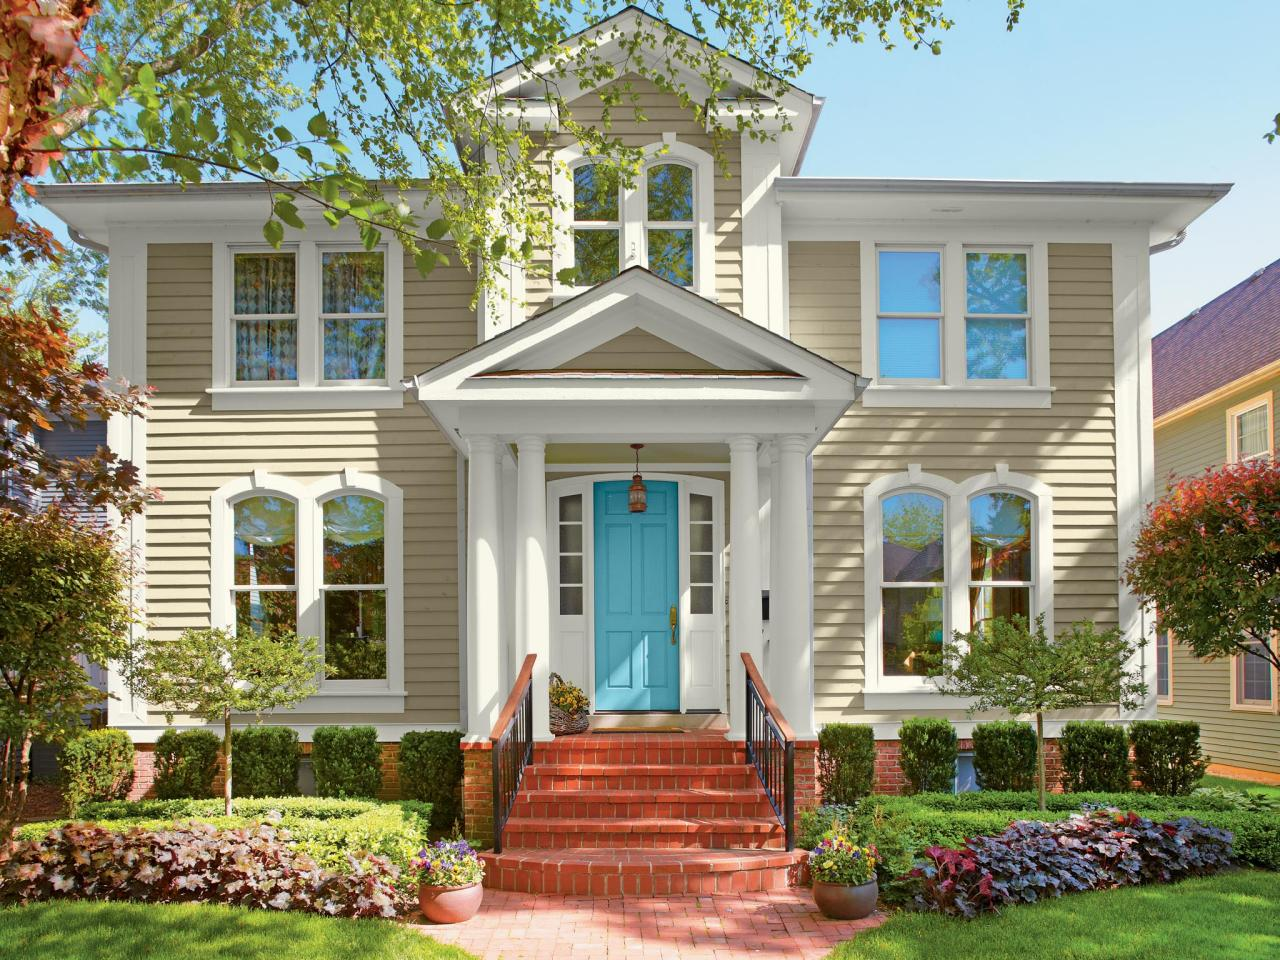 Exterior house colors yellow - Exterior House Colors Yellow 50